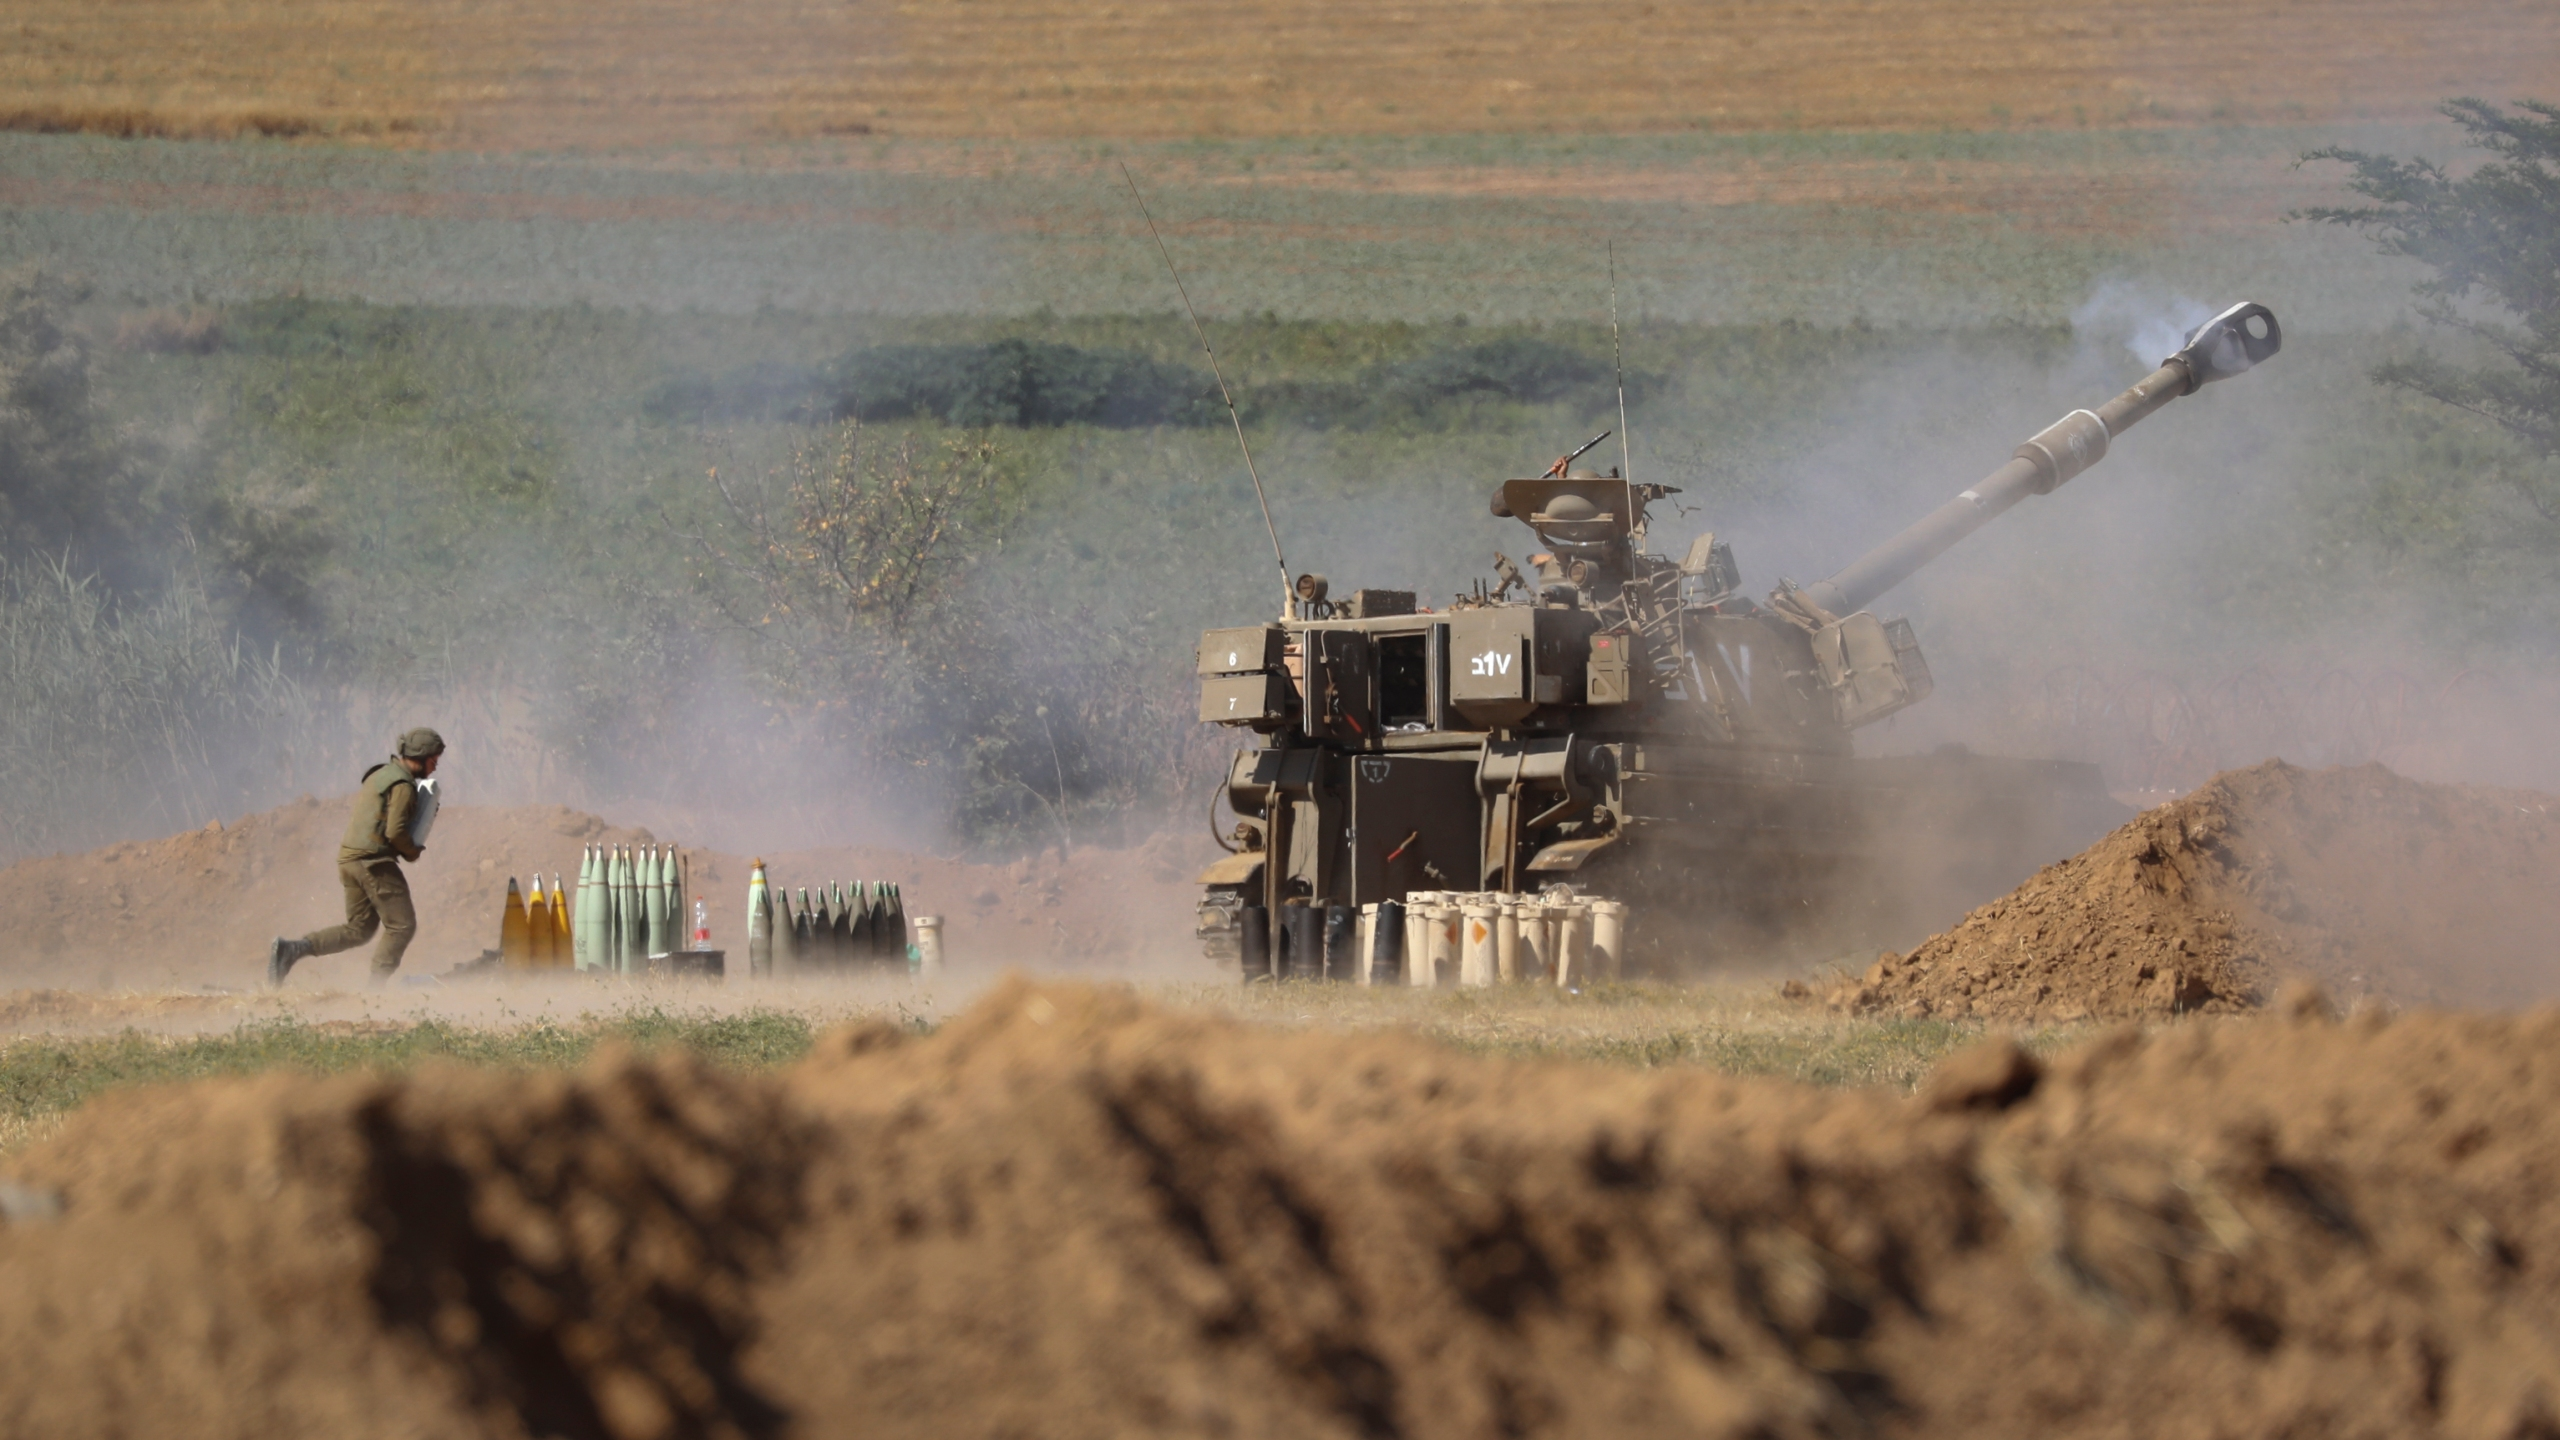 An Israeli artillery unit fires toward targets in the Gaza Strip, at the Israel-Gaza border, Saturday, May 15, 2021. (AP Photo/Ariel Schalit)